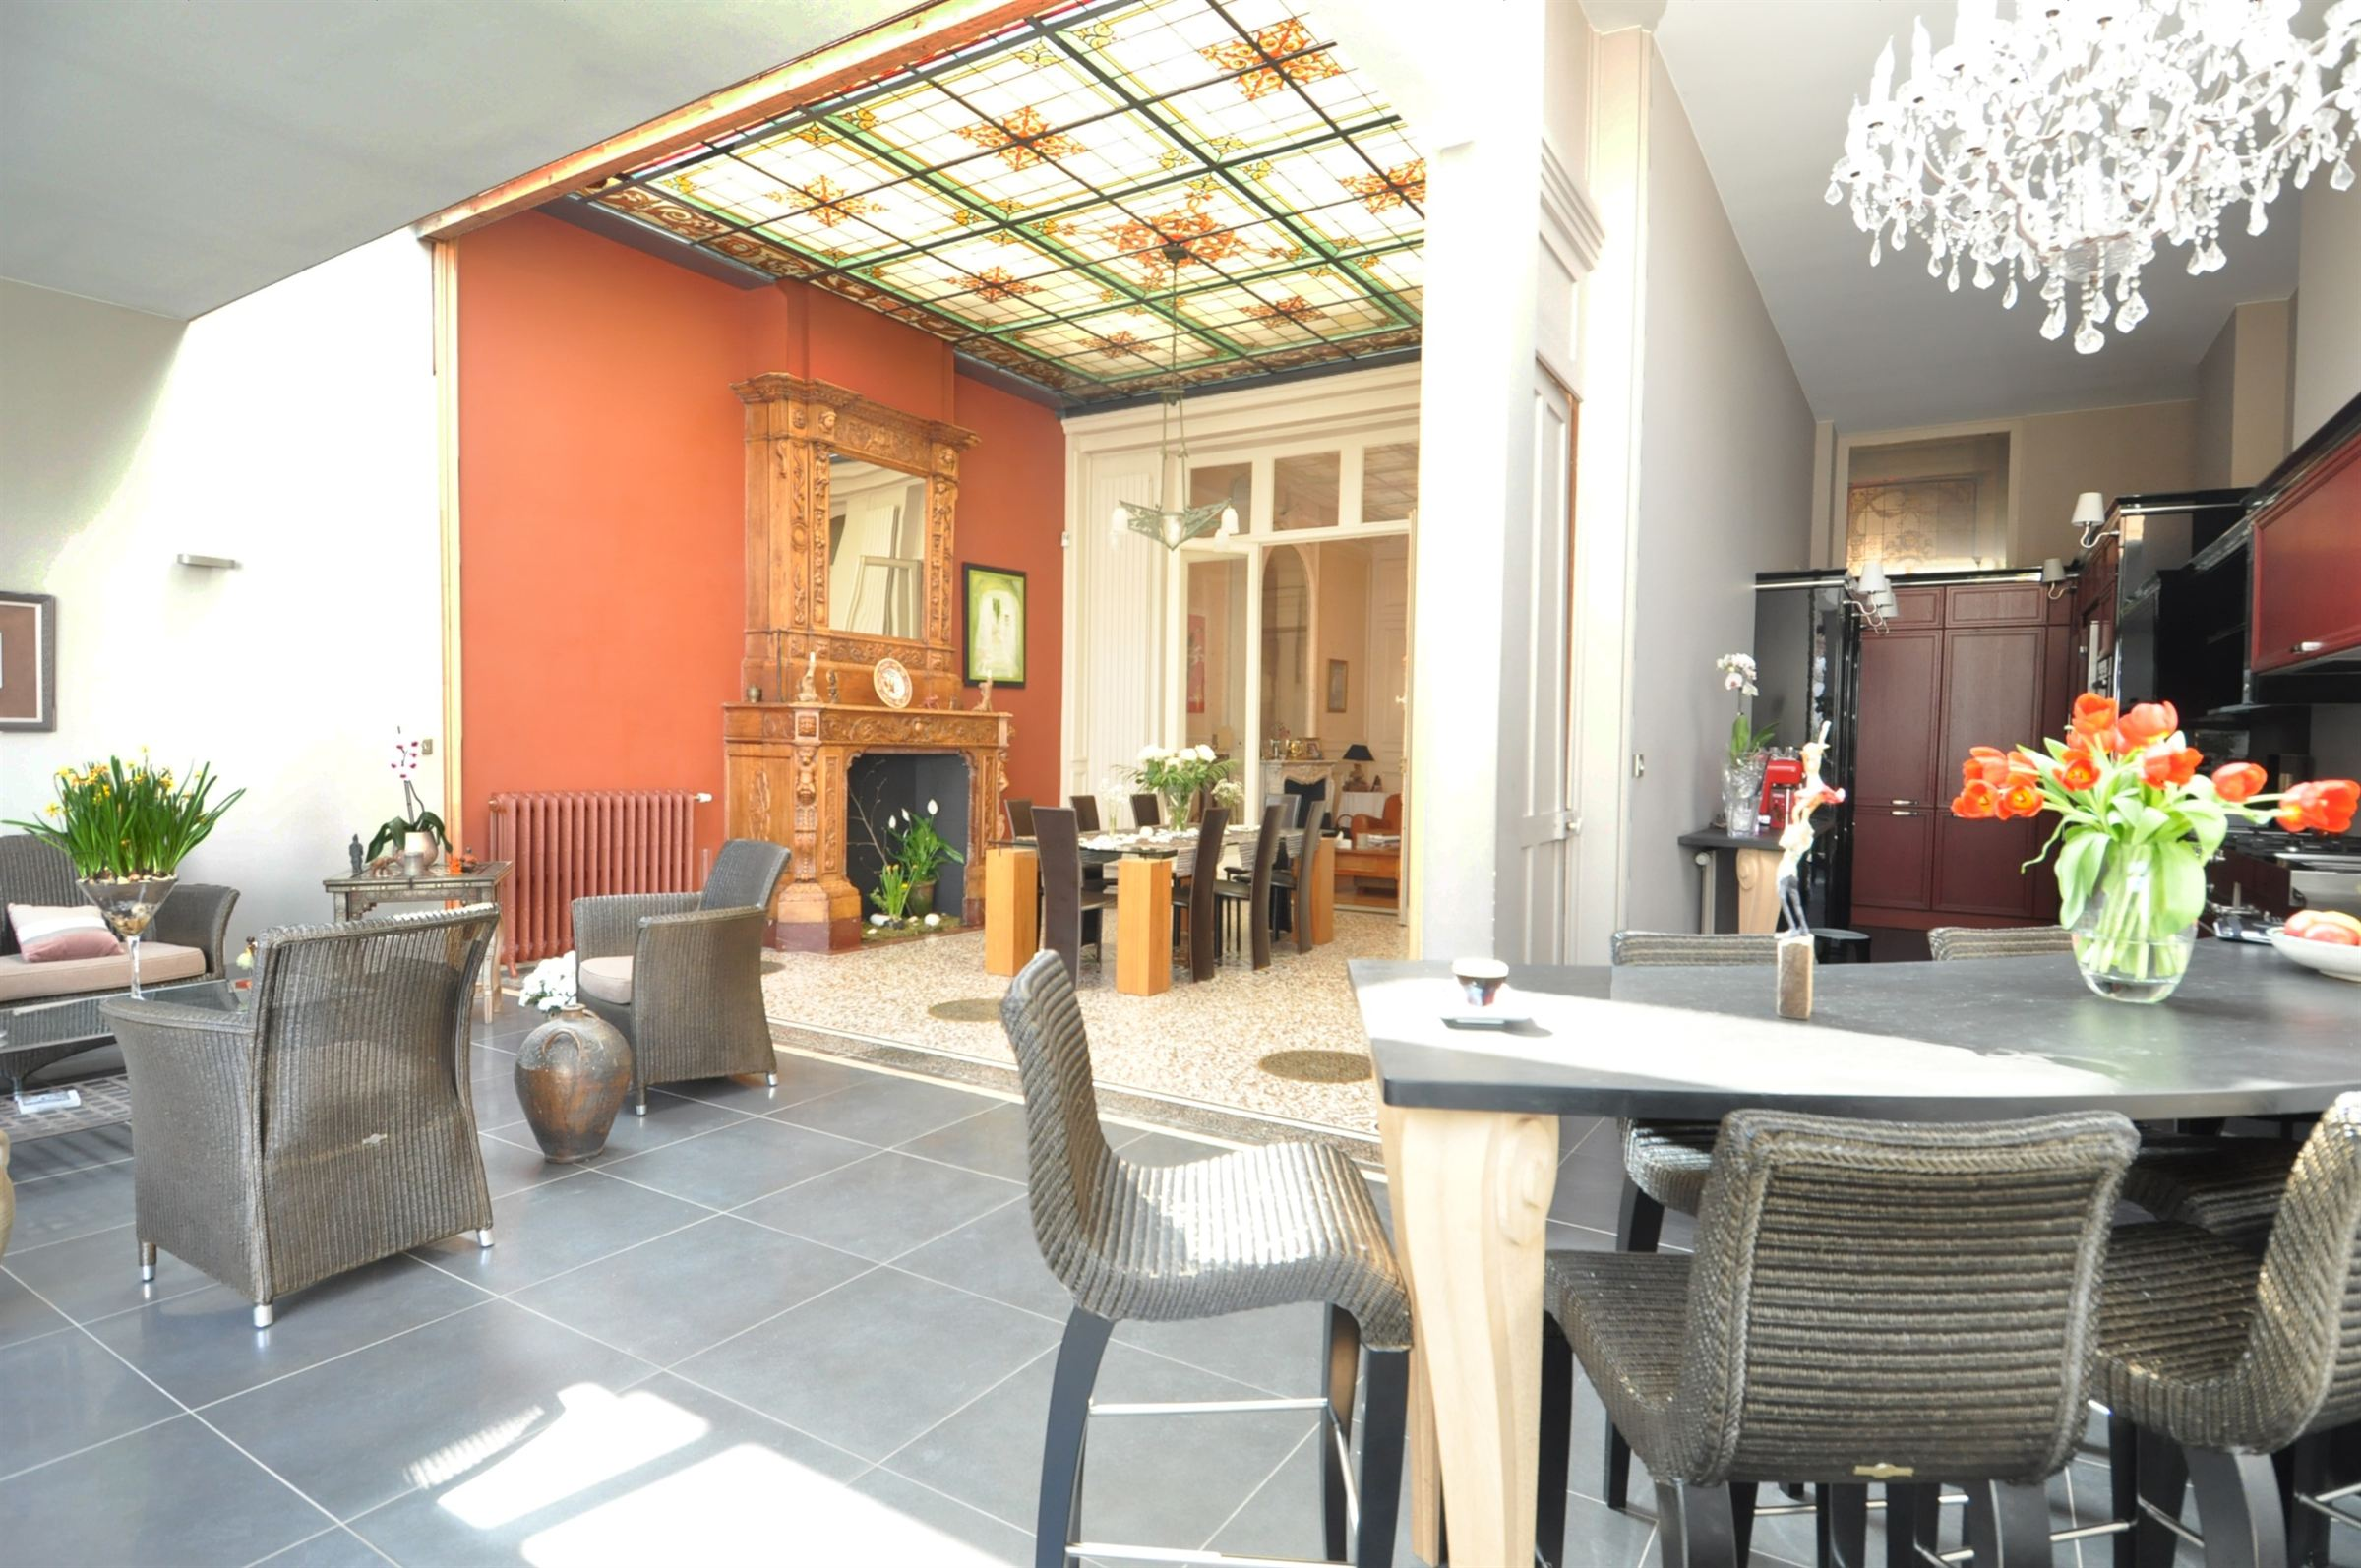 sales property at Lille near Porte de Paris, Wonderful Family House 408 m2 hab. 9 bedrooms